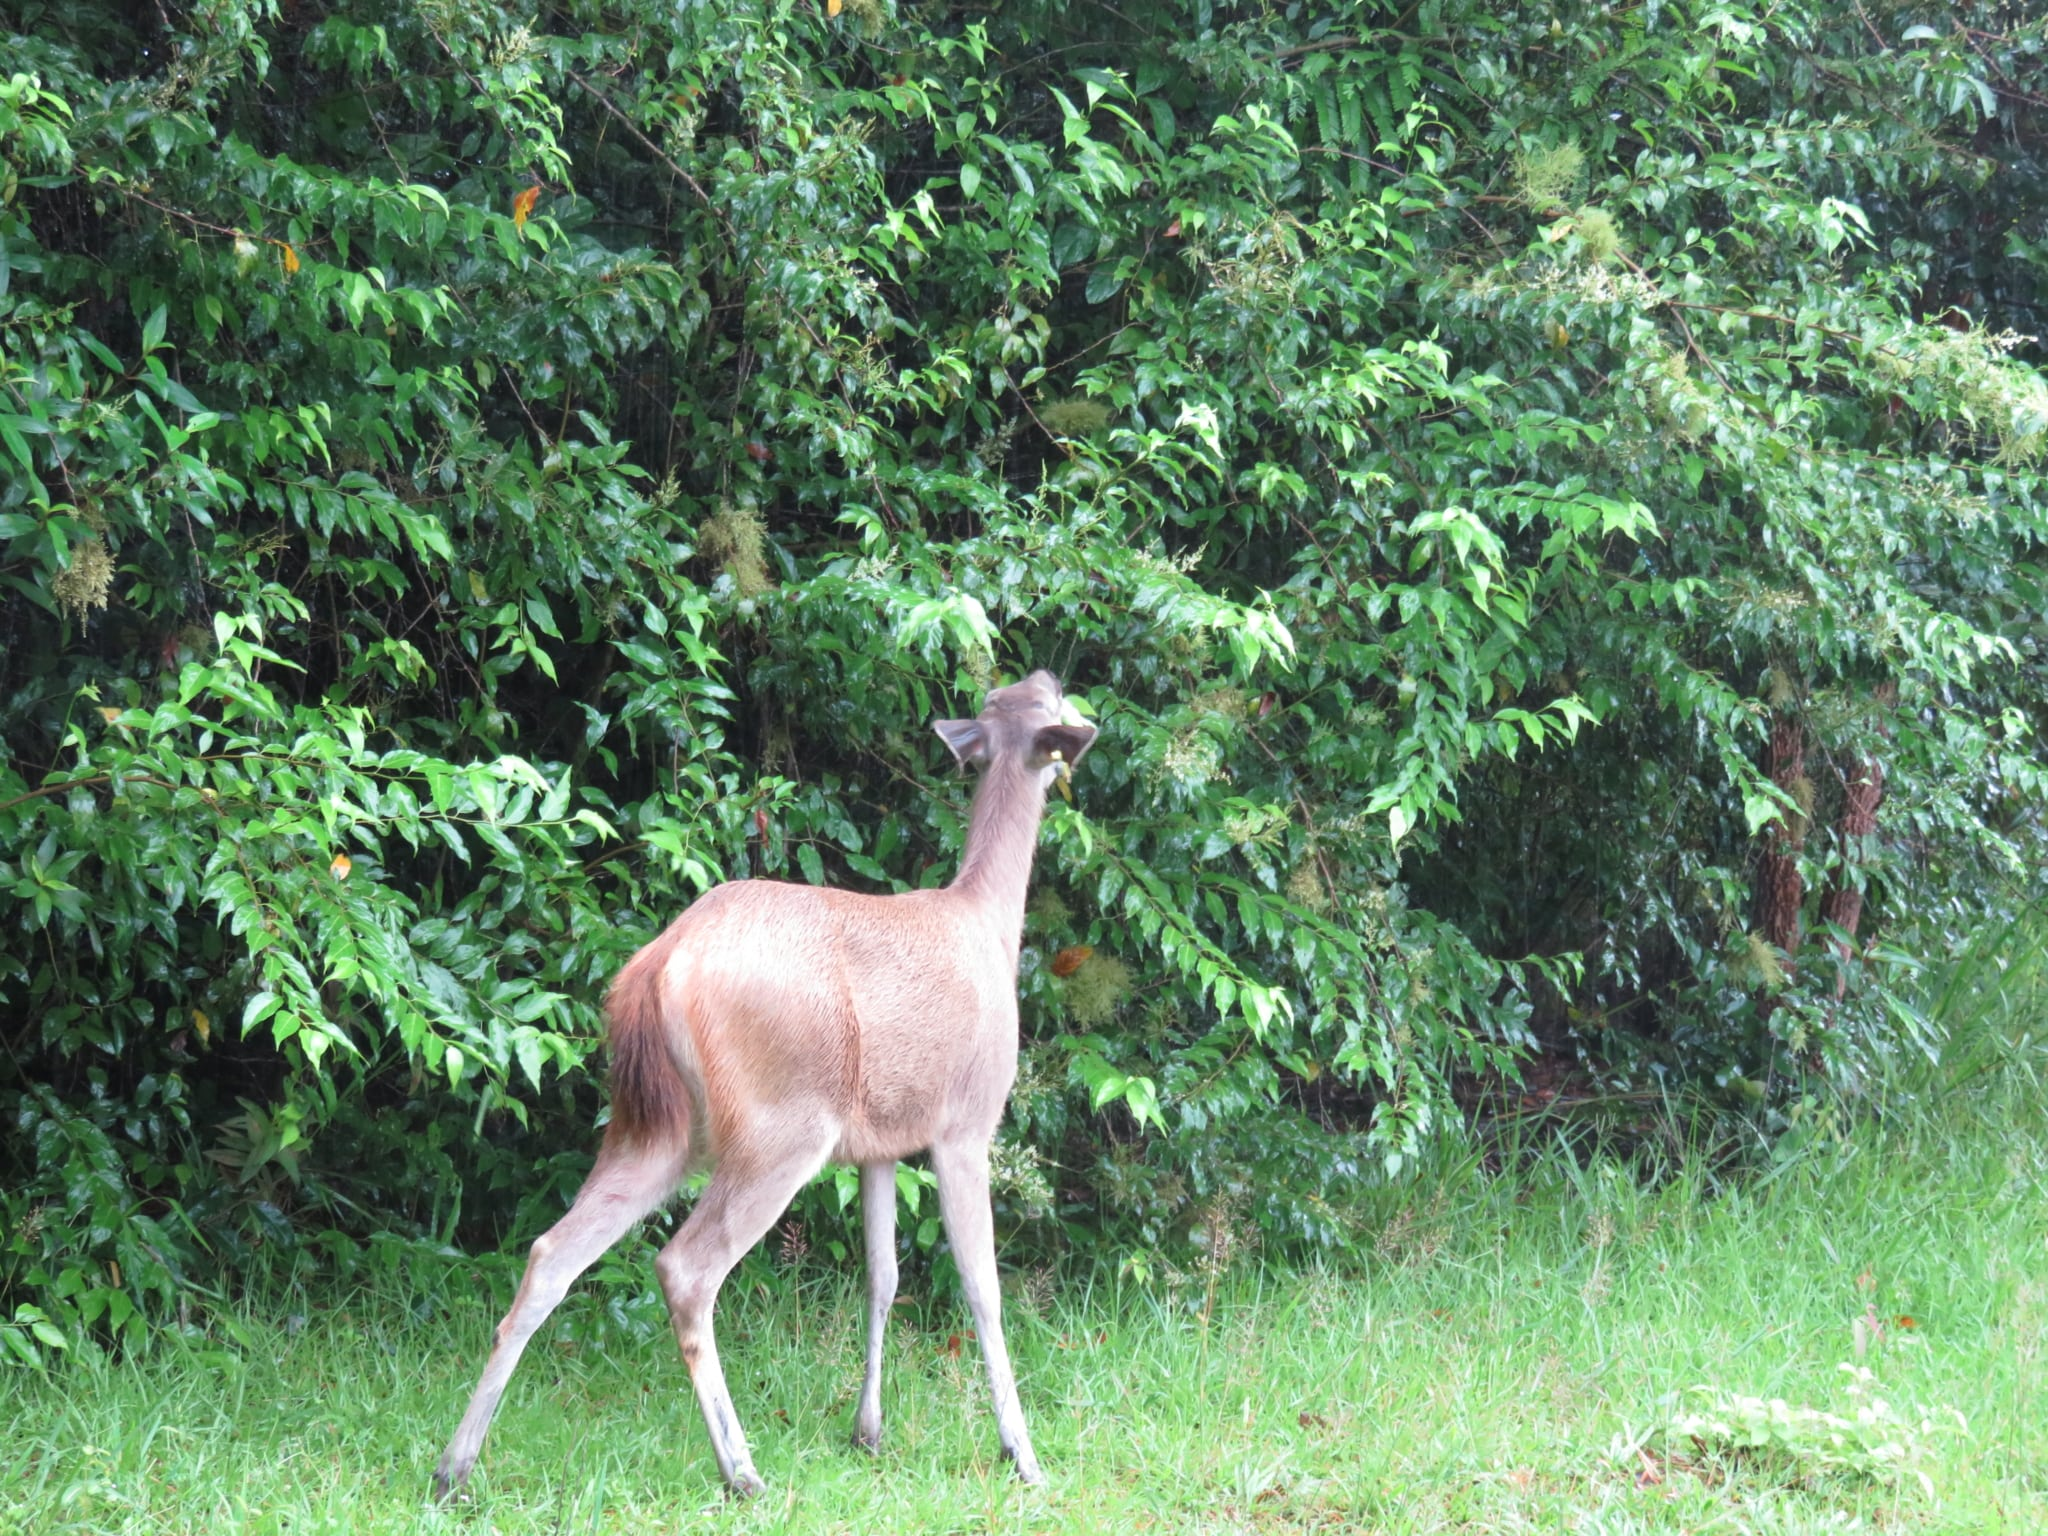 sambar deer successfully released into the cardamom rainforest Sambar deer successfully released into the Cardamom Rainforest 2018